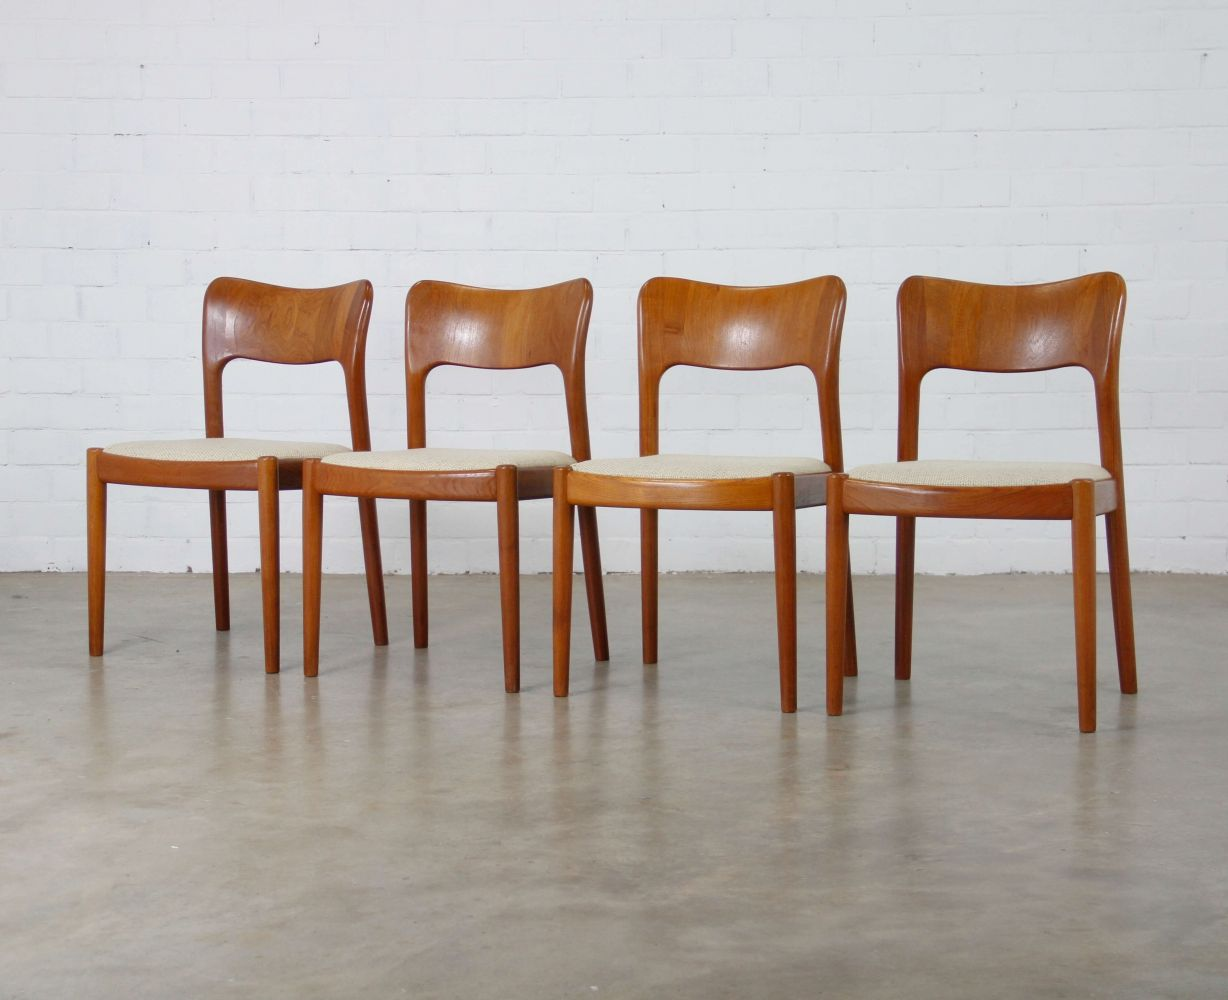 For Sale: Set Of 4 Dinner Chairs By Niels Koefoed For Koefoeds Hornslet,  1950s